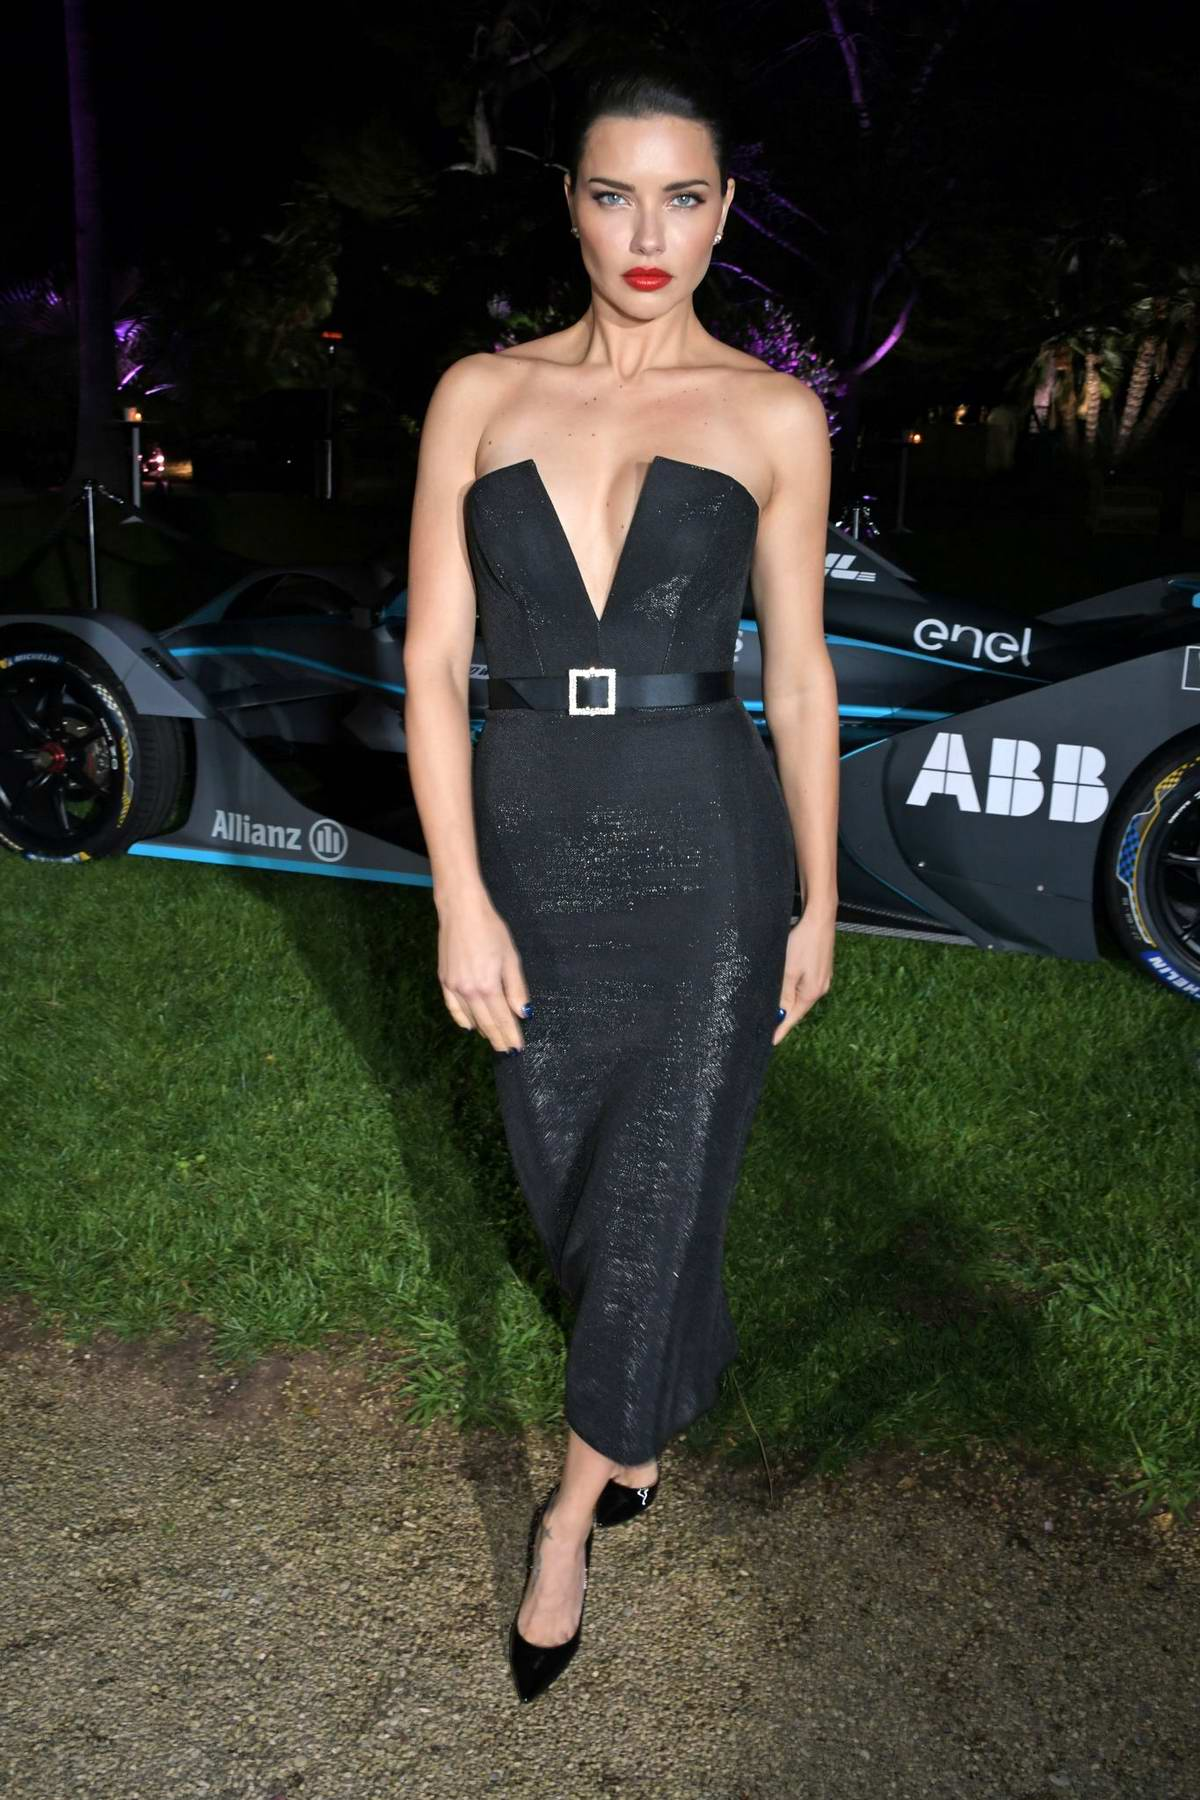 Adriana Lima attends a private dinner hosted by Alejandro Agag during the 72nd annual Cannes Film Festival in Cannes, France